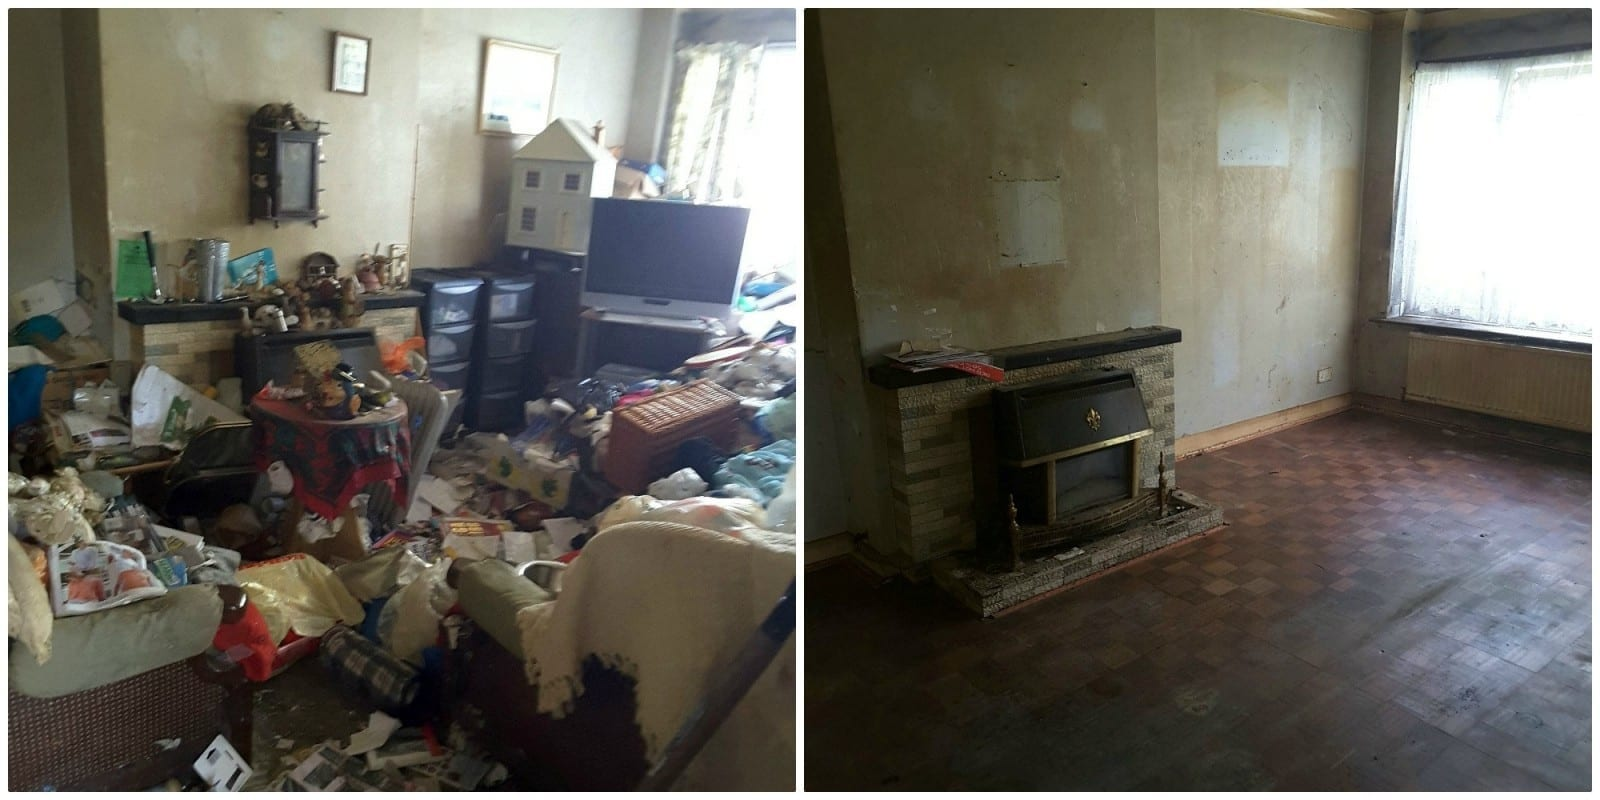 House Clearance Firm Removed 12 Tonnes Of Belongings, Rubbish And Furniture From Bungalow That Forced Elderly Occupant To Live In The Hallway – For Almost 30 Years